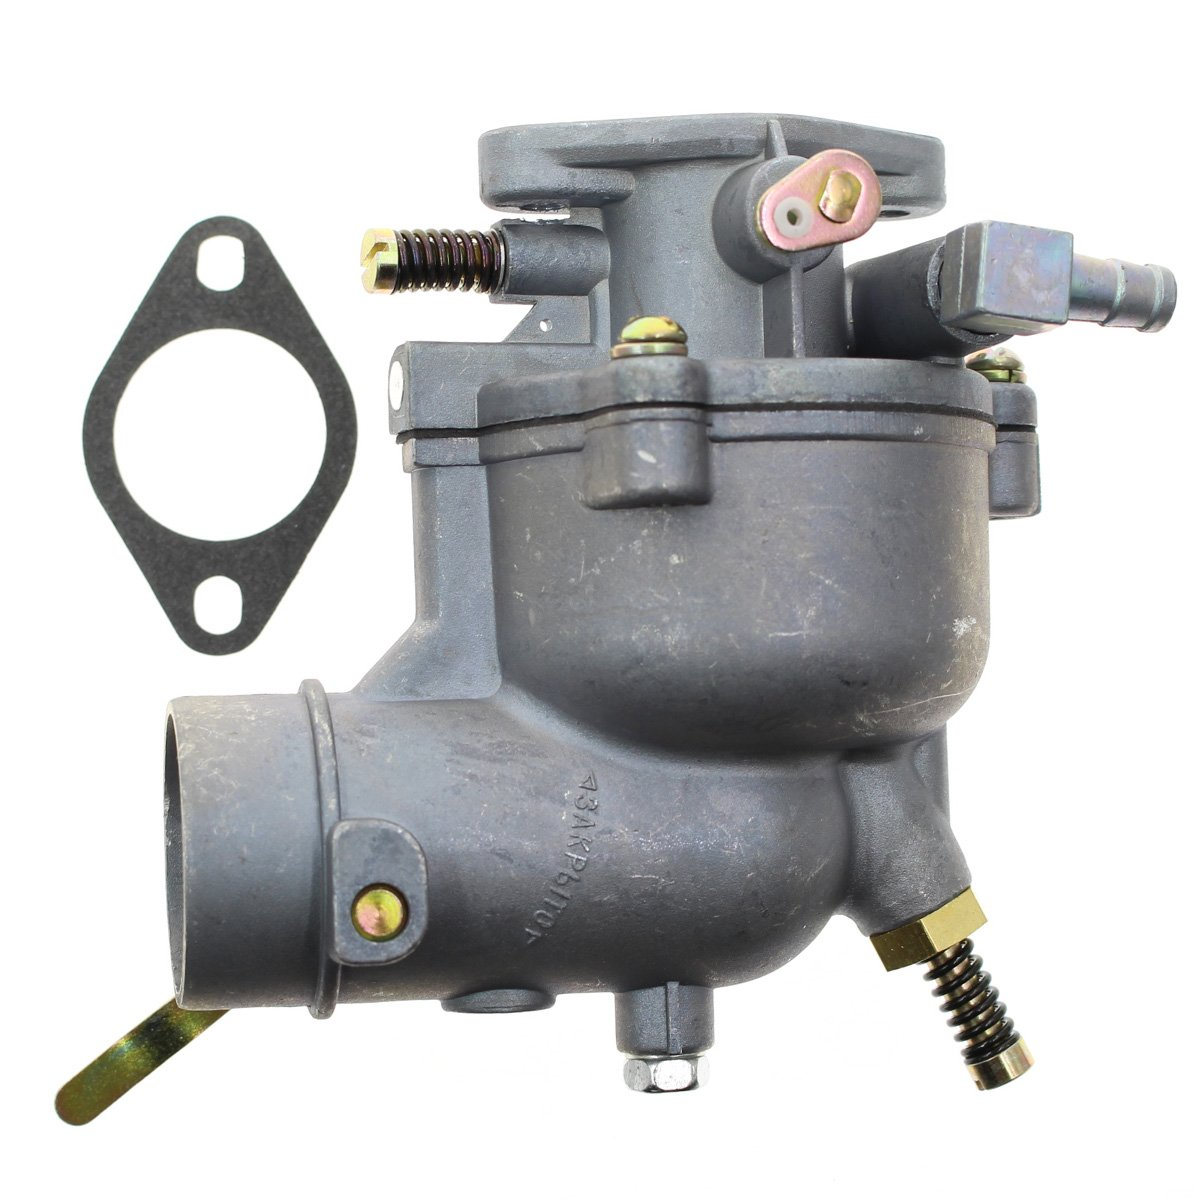 Carbhub Carburetor for Briggs & Stratton 390323 394228 398170 7HP 8HP 9HP Horizontal Engines Troybilt Carb